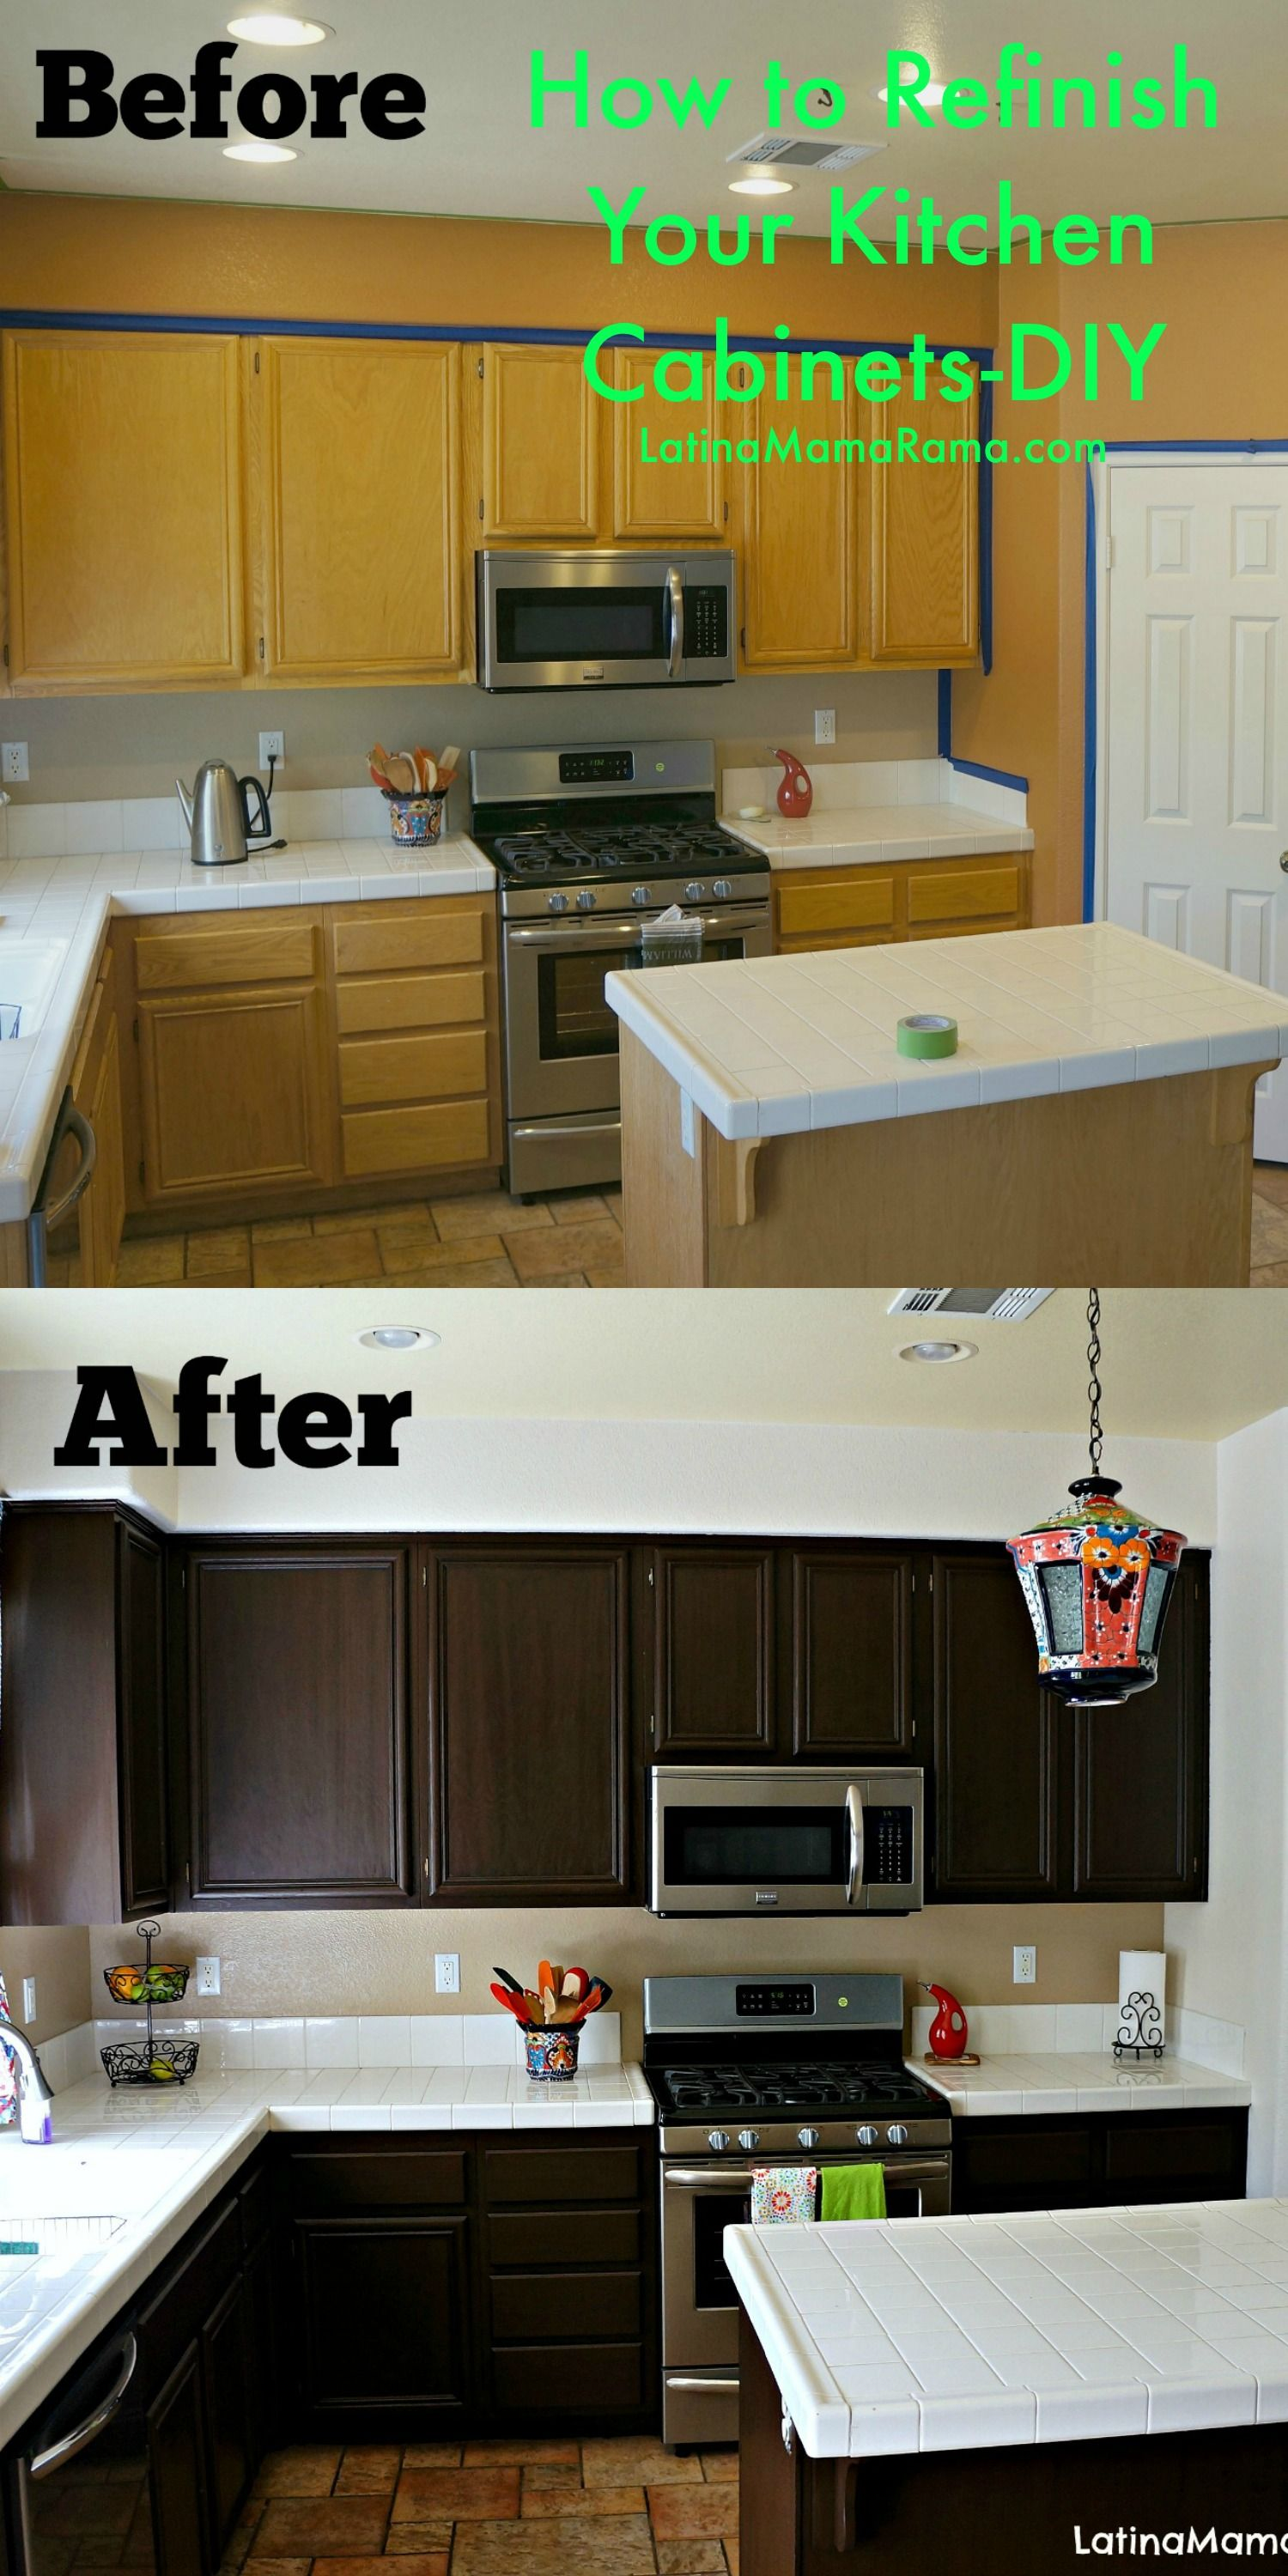 How to Refinish Your Kitchen Cabinets | Kitchens, House and Apartments